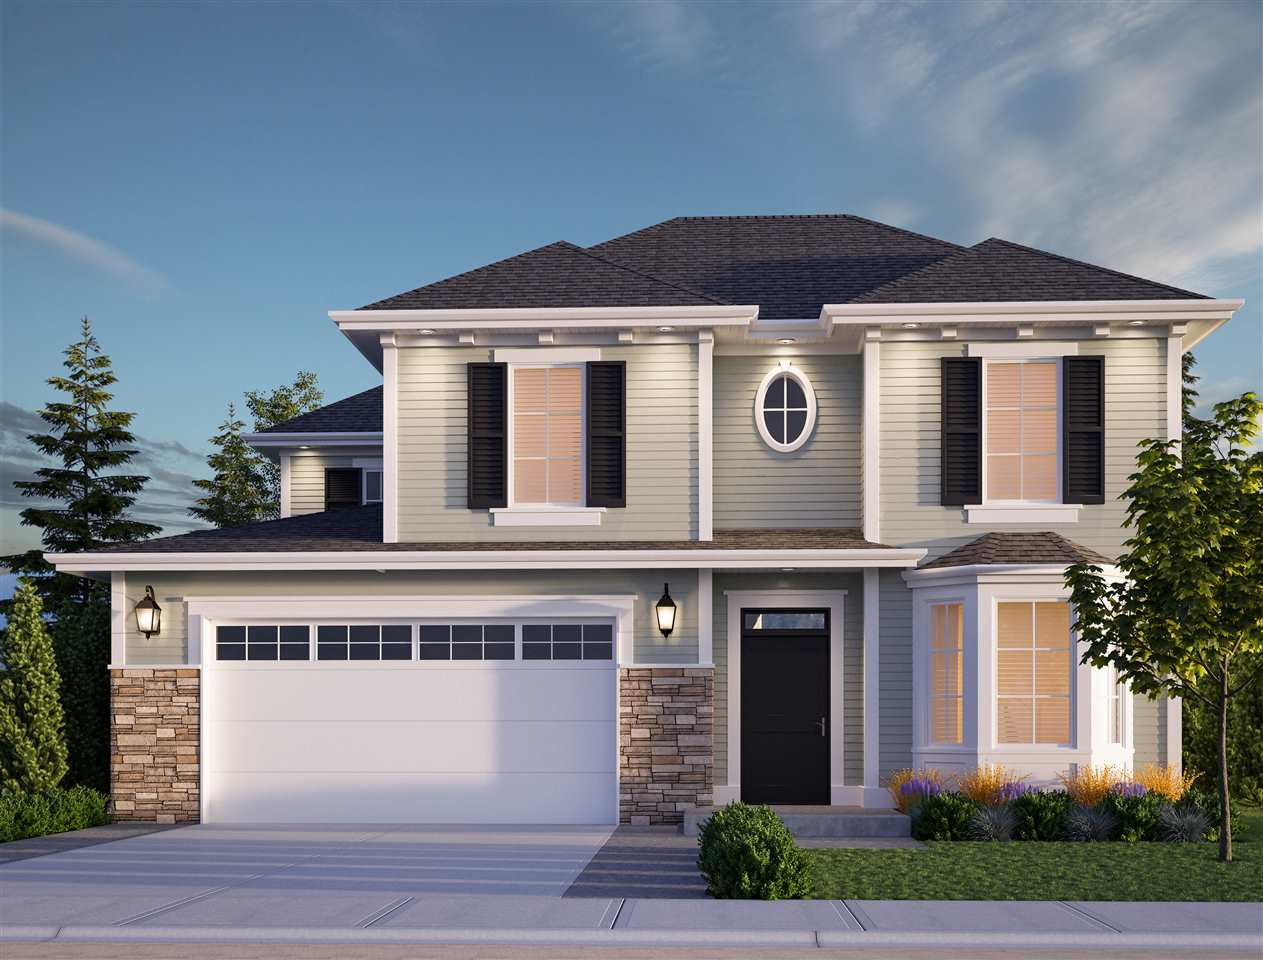 NEW @ WEBSTERS CROSSING! Coming in Spring 2018, this 3228 sq ft 4 bdrm/3 bath home is the place you'll want to call home. Featuring a TRIPLE CAR GARAGE, lovely fenced landscaped backyard, full driveway, and top notch finishing from top to bottom! Open concept kitchen w/ quartz counters, soft close cabinets, SS appliances, and coffered ceilings. Upstairs you'll find a bright loft + 3 large bdrms incl. master suite w/ 5 piece ensuite & walk in closet. FULL BSMT W/ SEPARATE ENTRY awaiting your finishing touches and ideas!  Two designer color schemes to choose from and time to pick colors should you choose!!! Walk to schools, parks, & the river!Call for more details and floorplans.